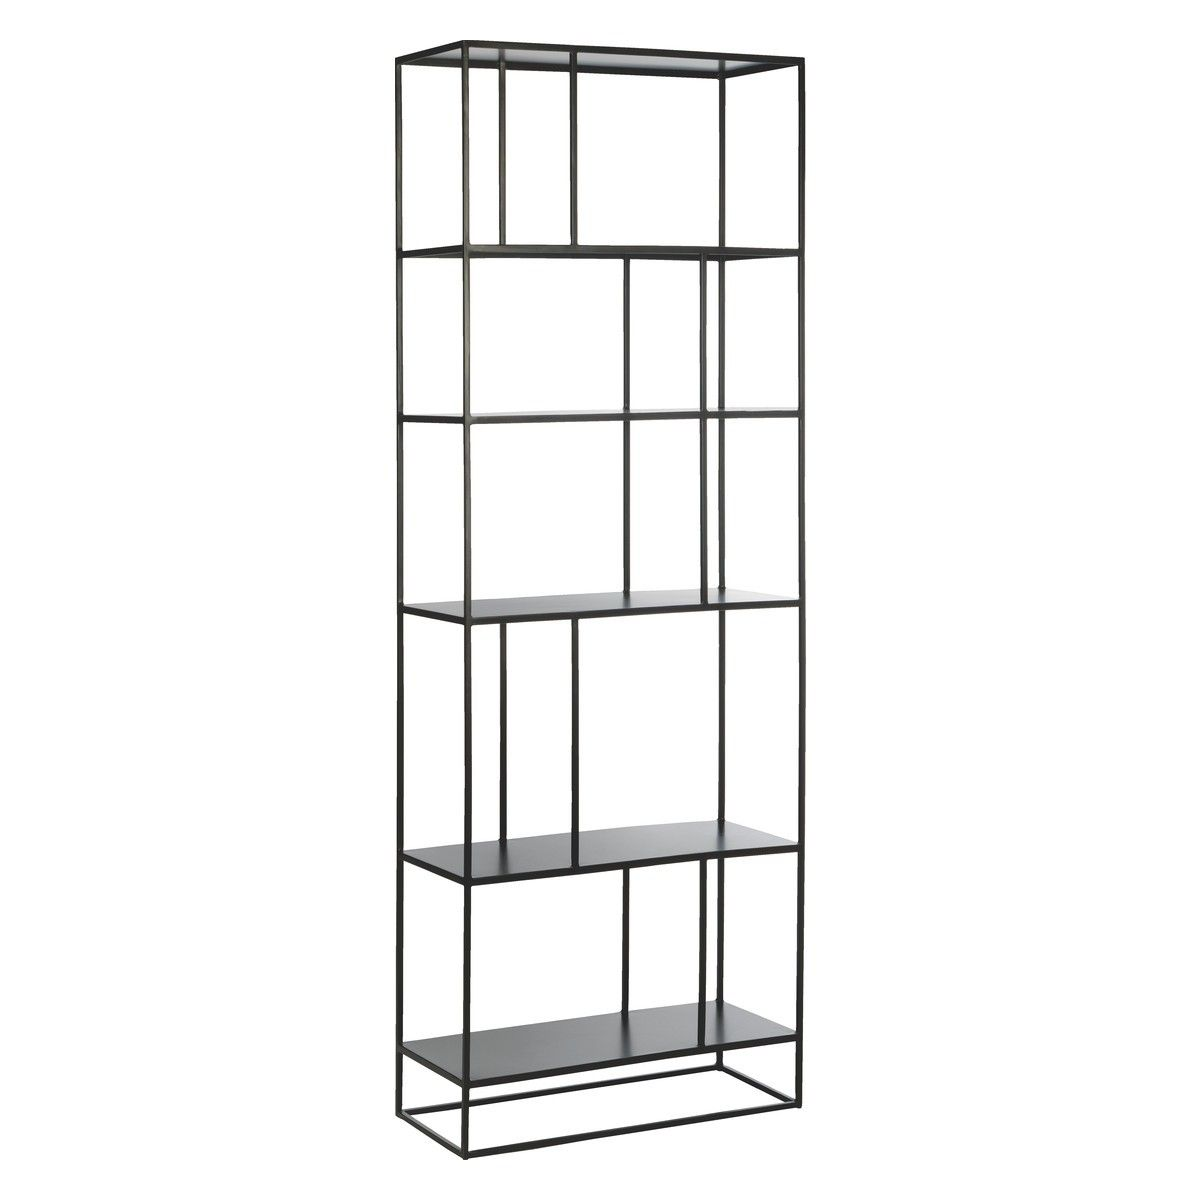 Kitchen Shelves Habitat: CALVO Black Metal Bookcase